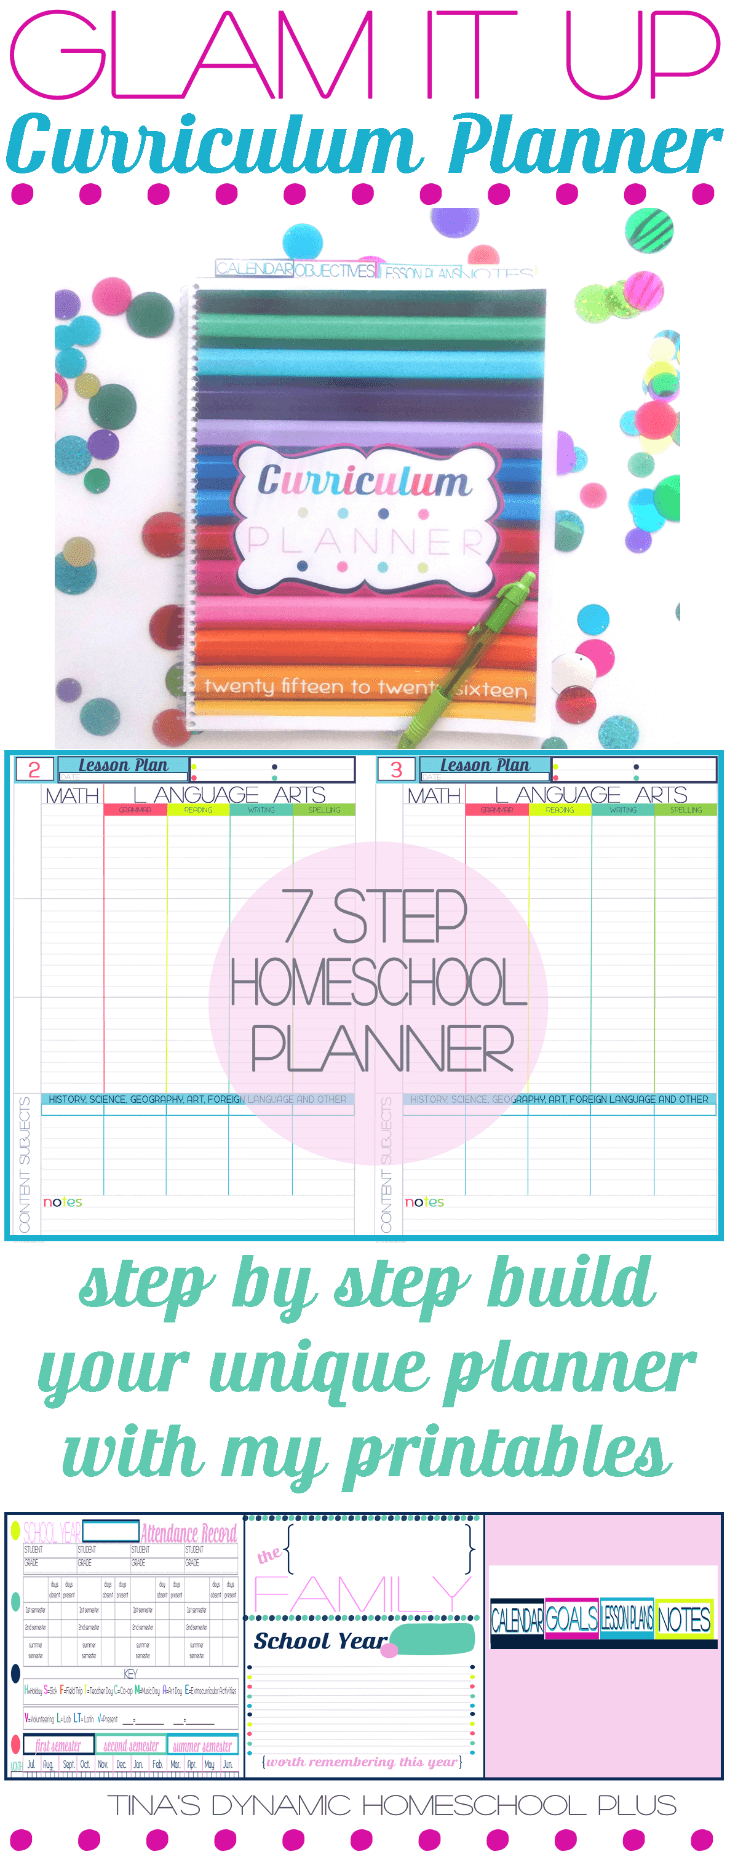 Glam It Up Homeschool Planner @ Tina's Dynamic Homeschool Planner